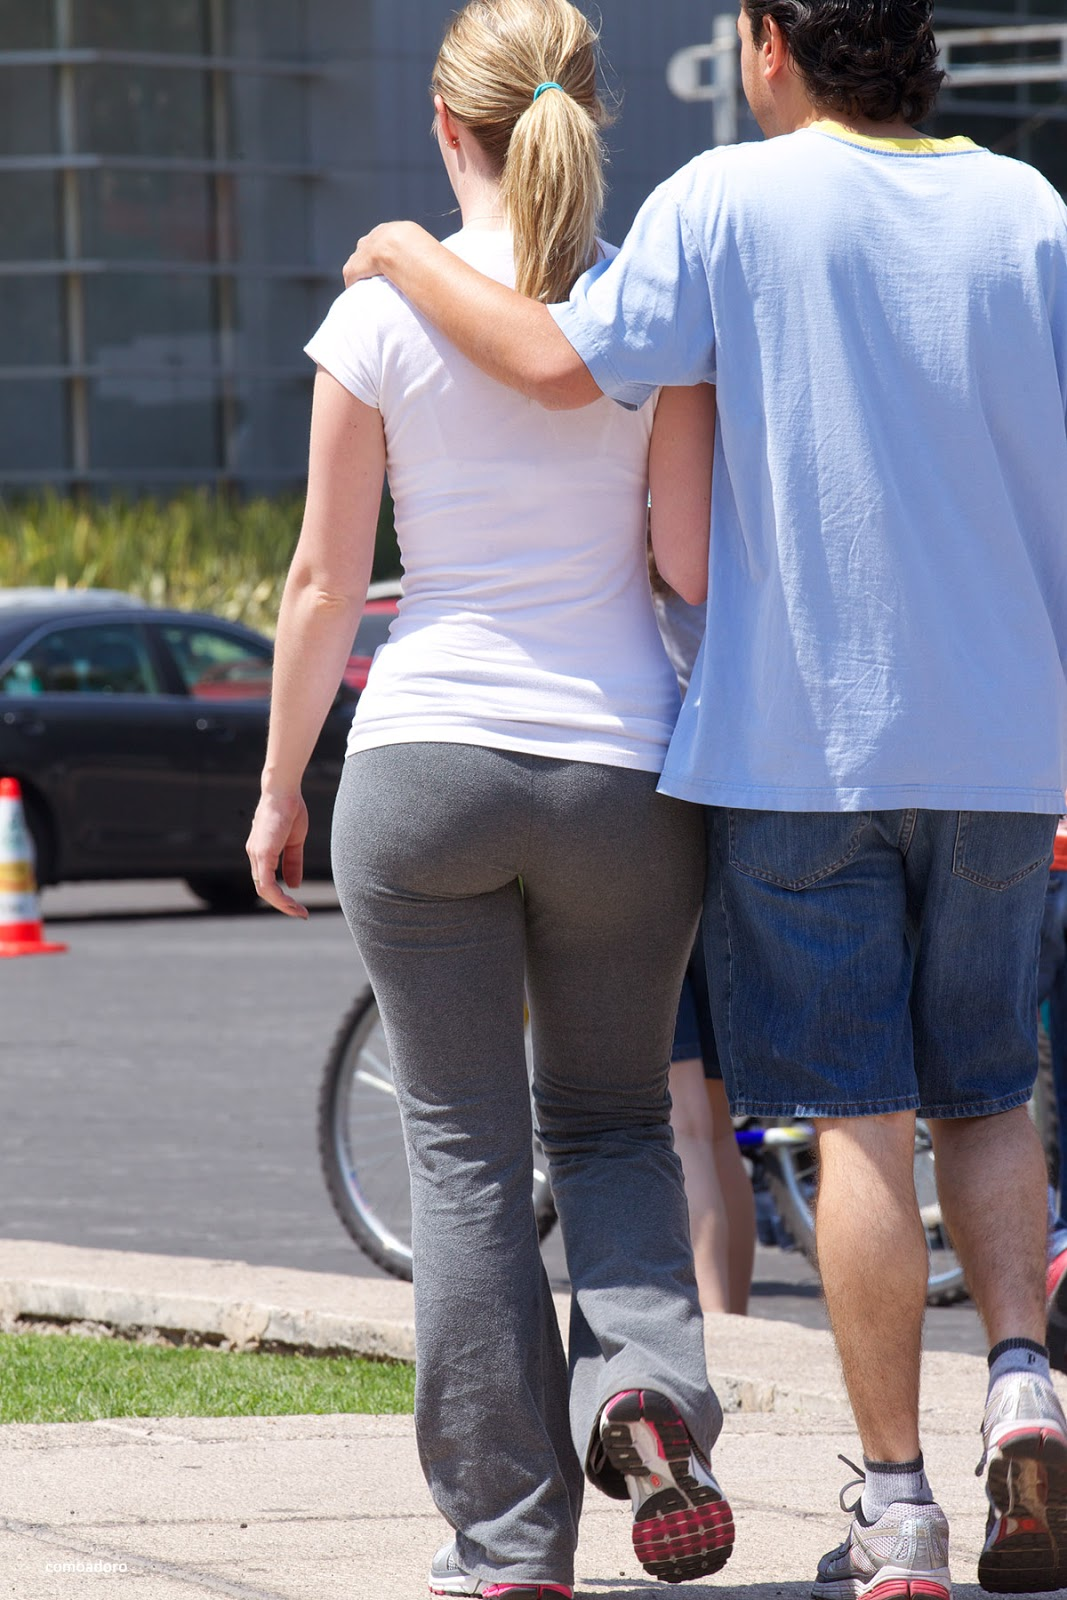 Free Tight Ass Pictures